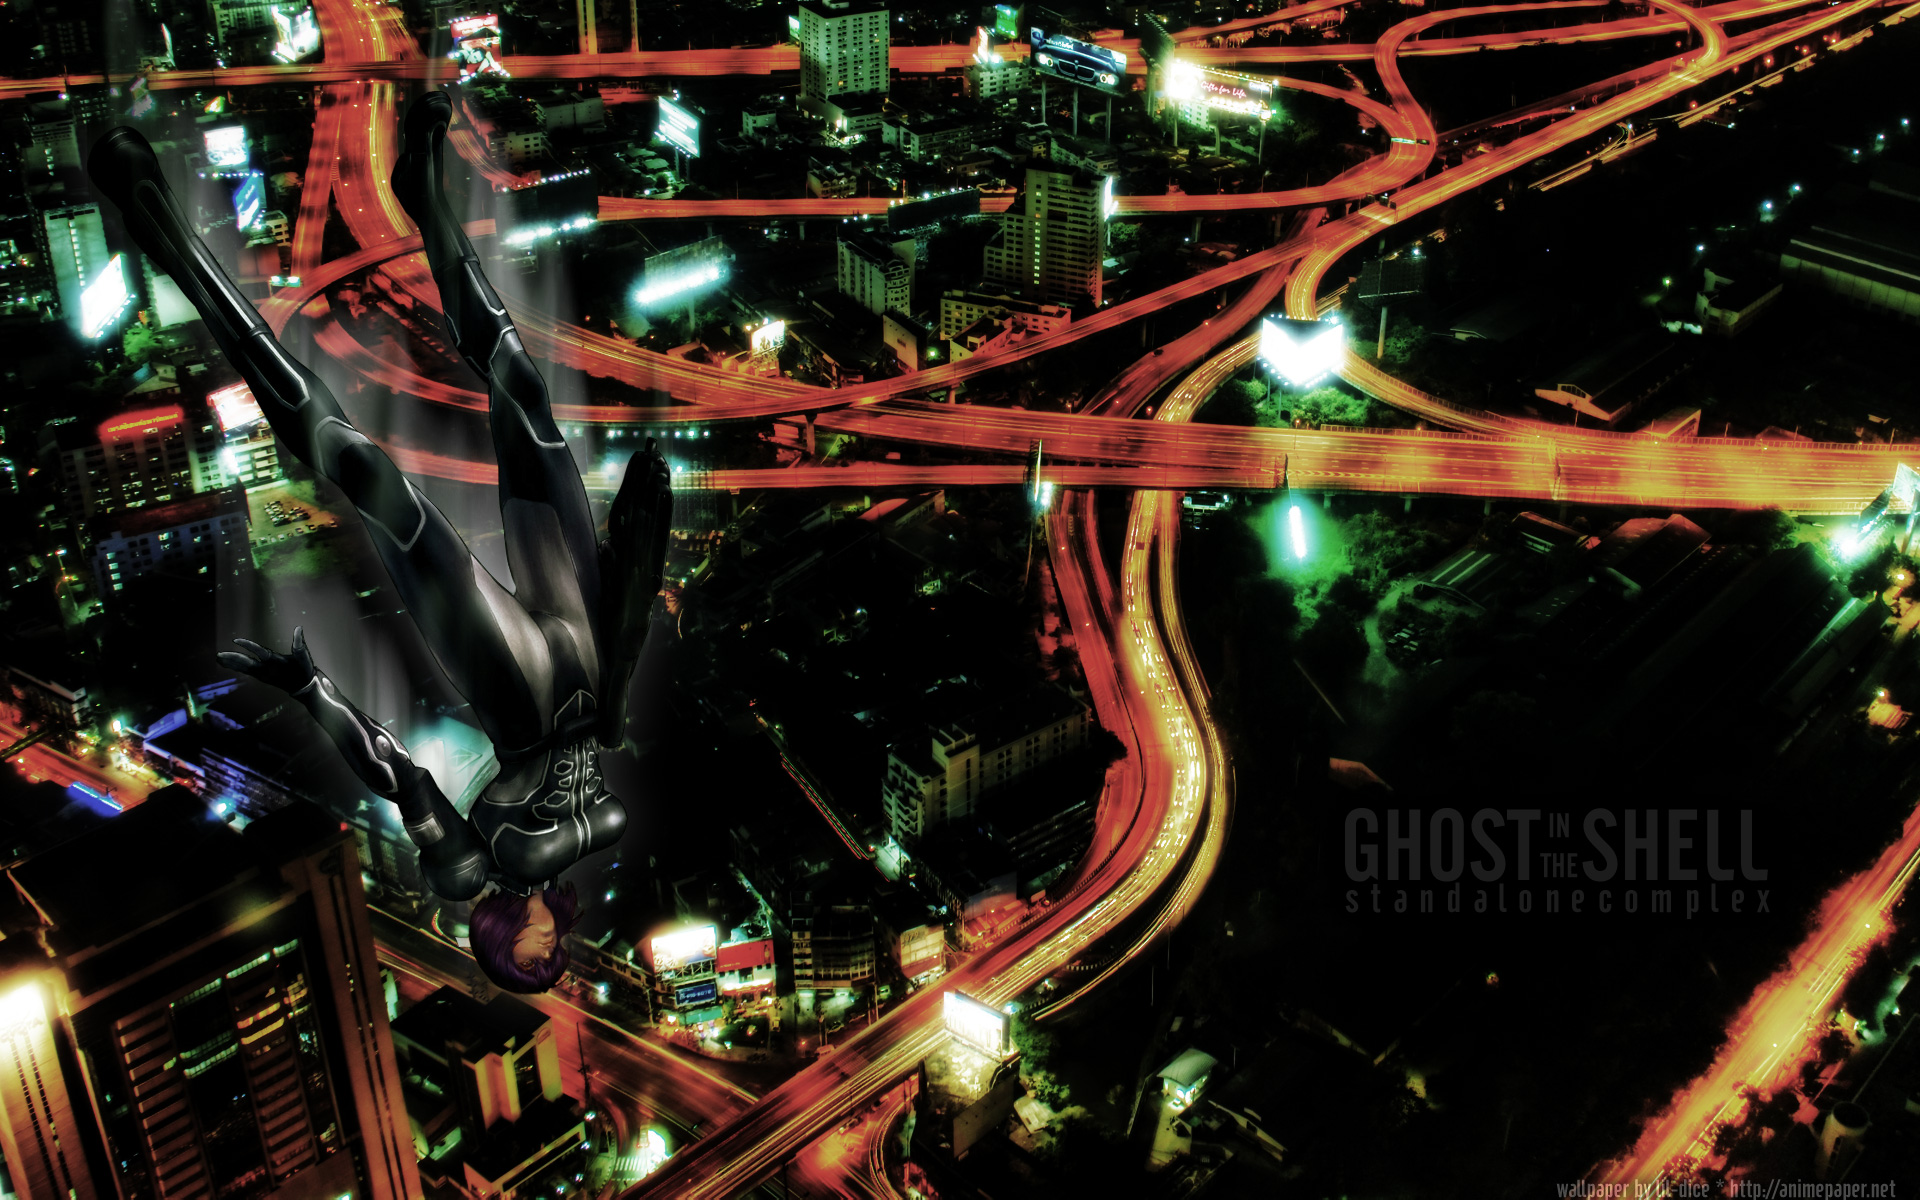 ghost_in_the_shell ghost_in_the_shell:_stand_alone_complex kusanagi_motoko night